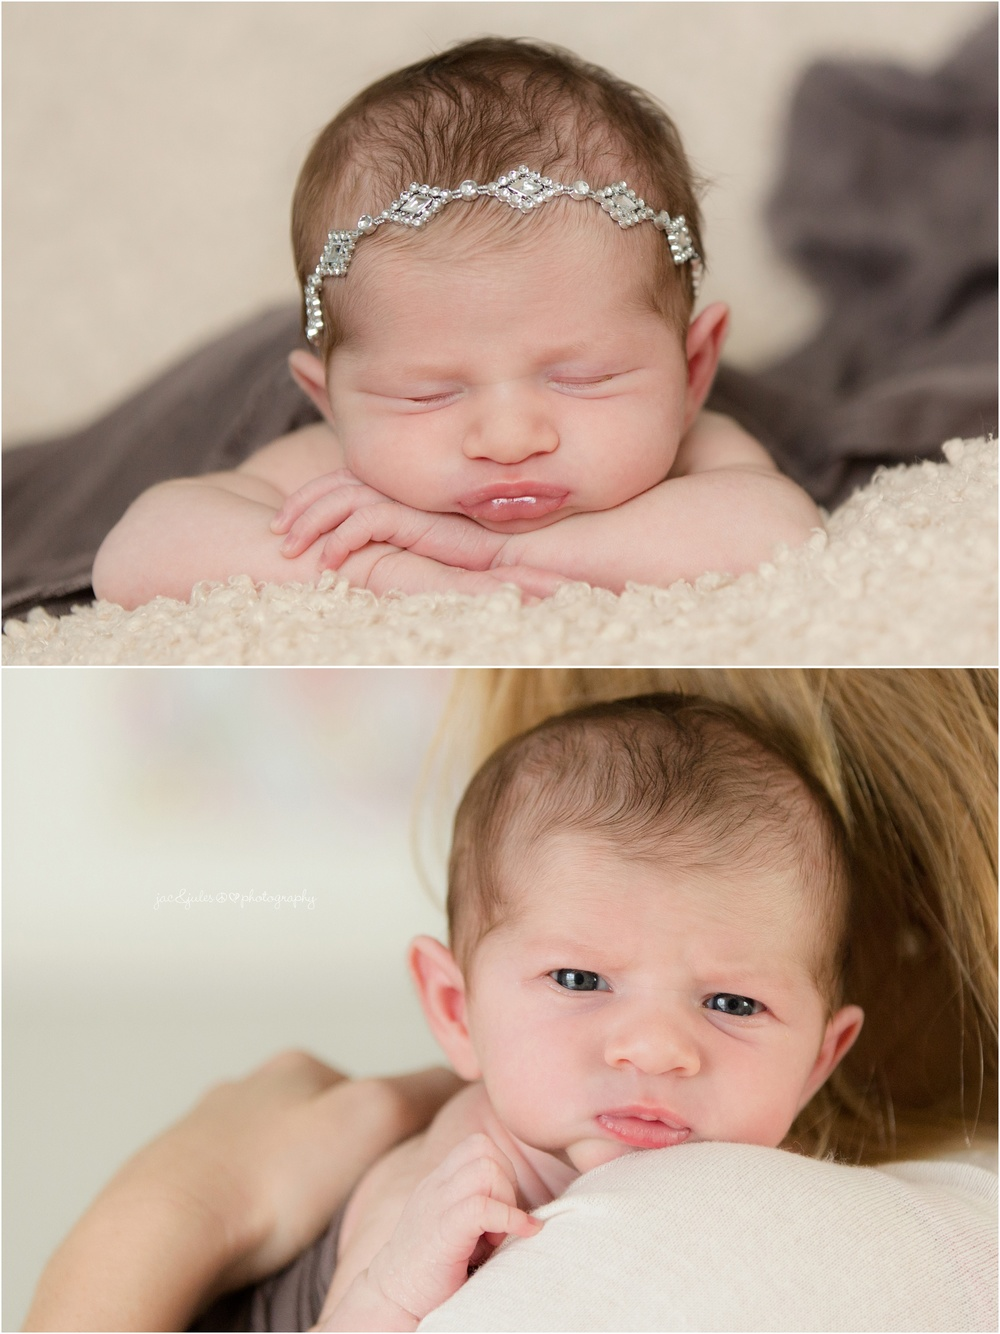 newborn baby girl in jewel headband